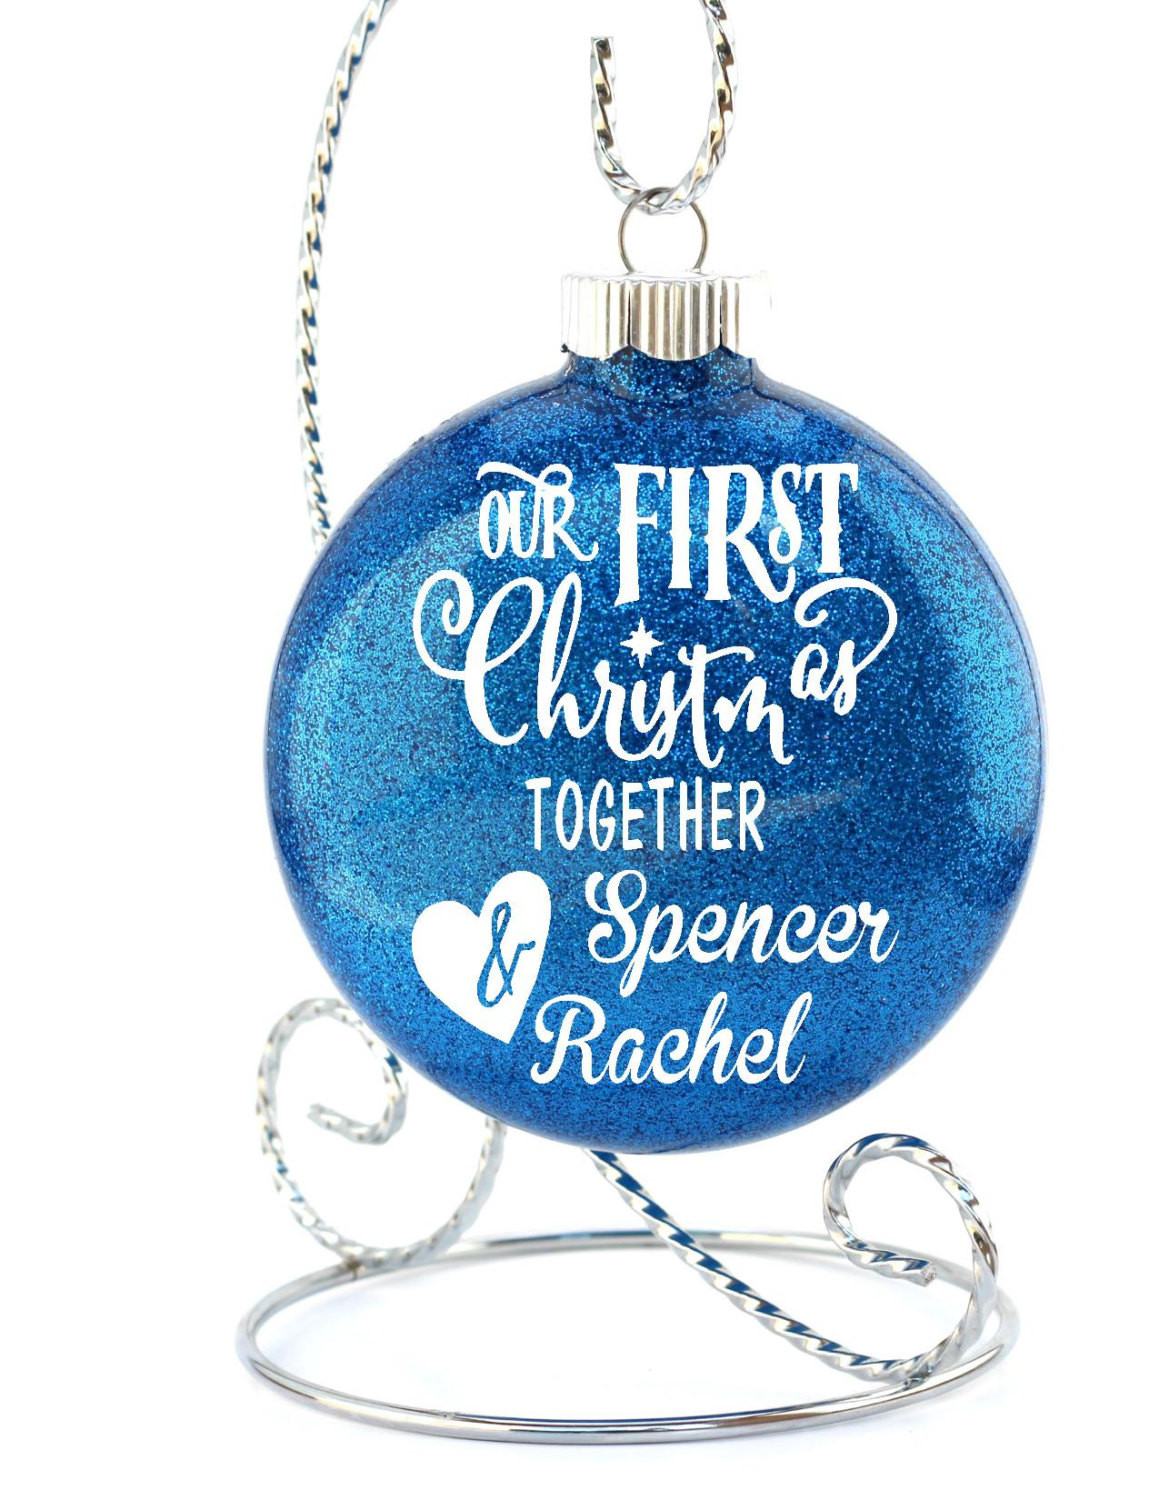 First Christmas Together Gift Ideas  Our First Christmas To her Couples Ornament Ornament